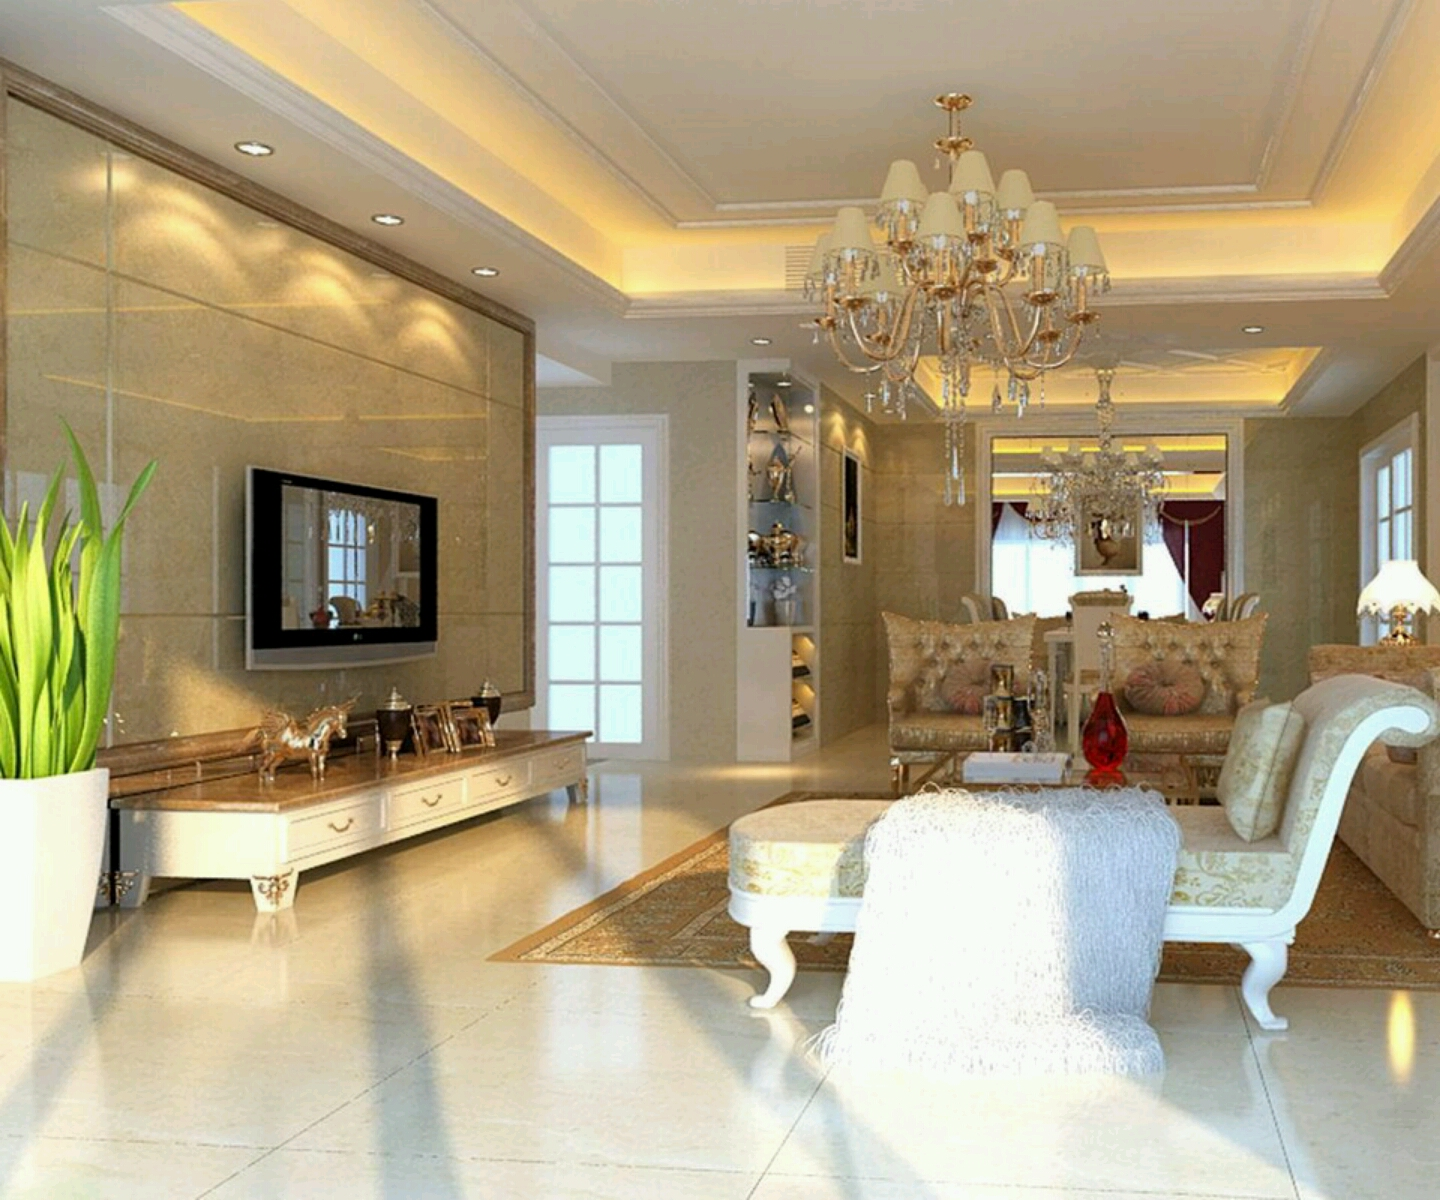 ... interior decoration living room designs ideas.  New home designs